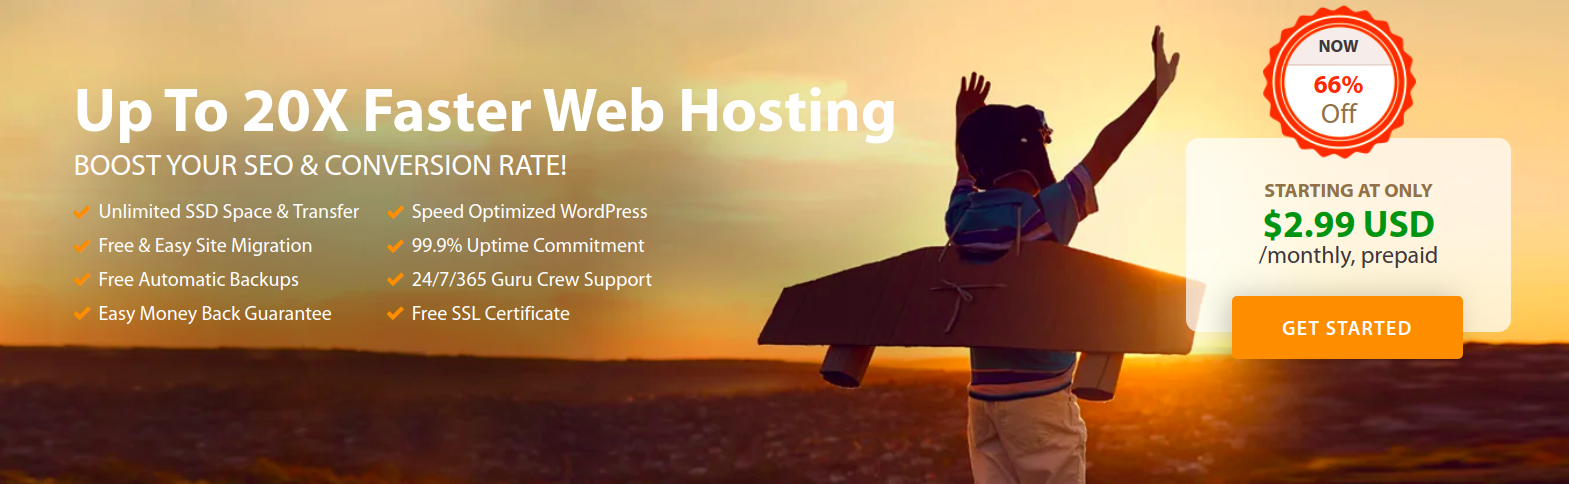 Why we've chosen a2hosting for our web hosting provider ? 3